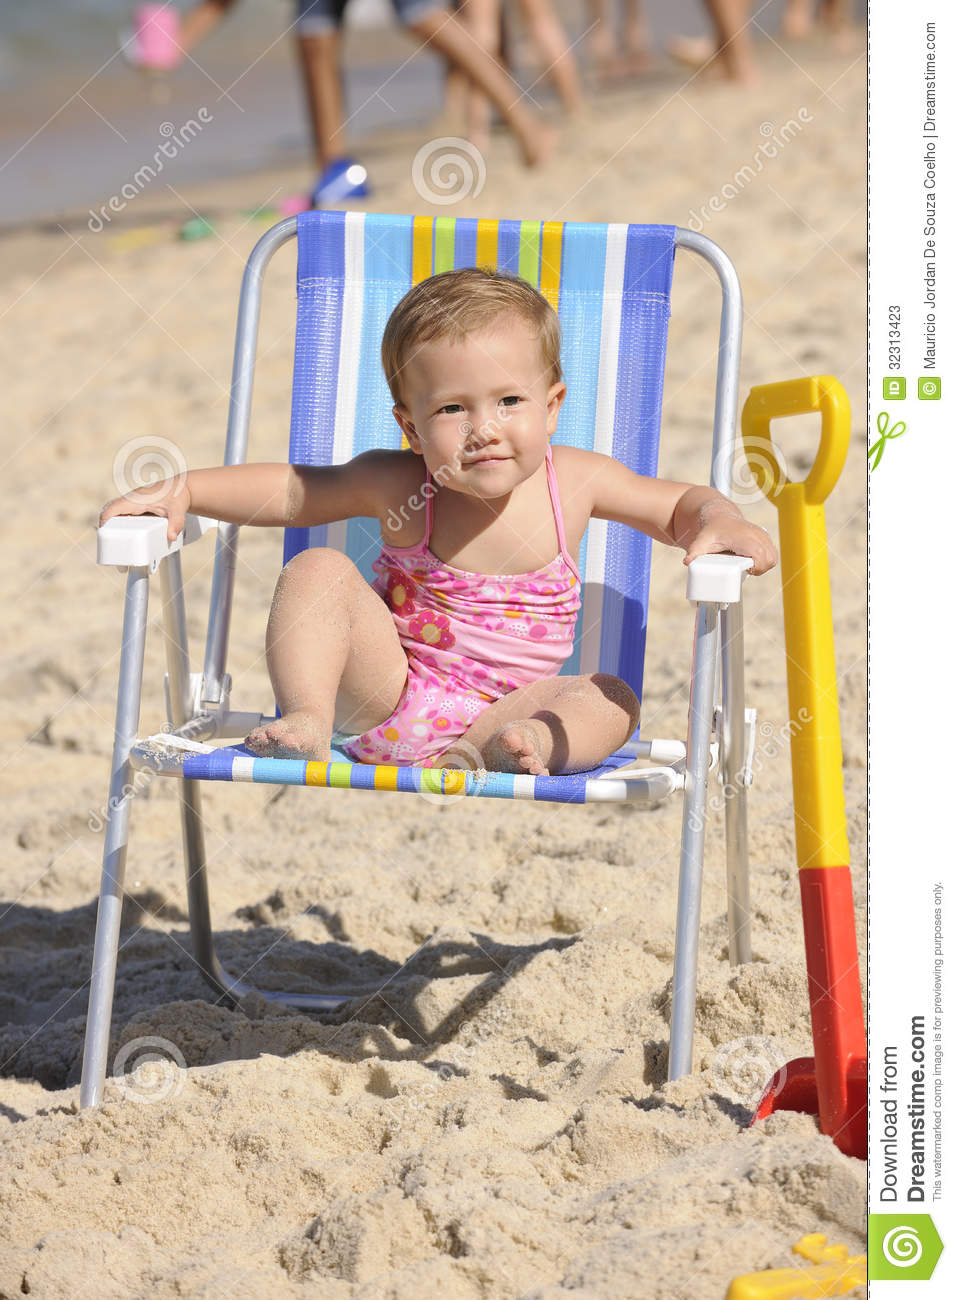 Baby girl sitting on a beach chair stock image image for Toddler sitting chair